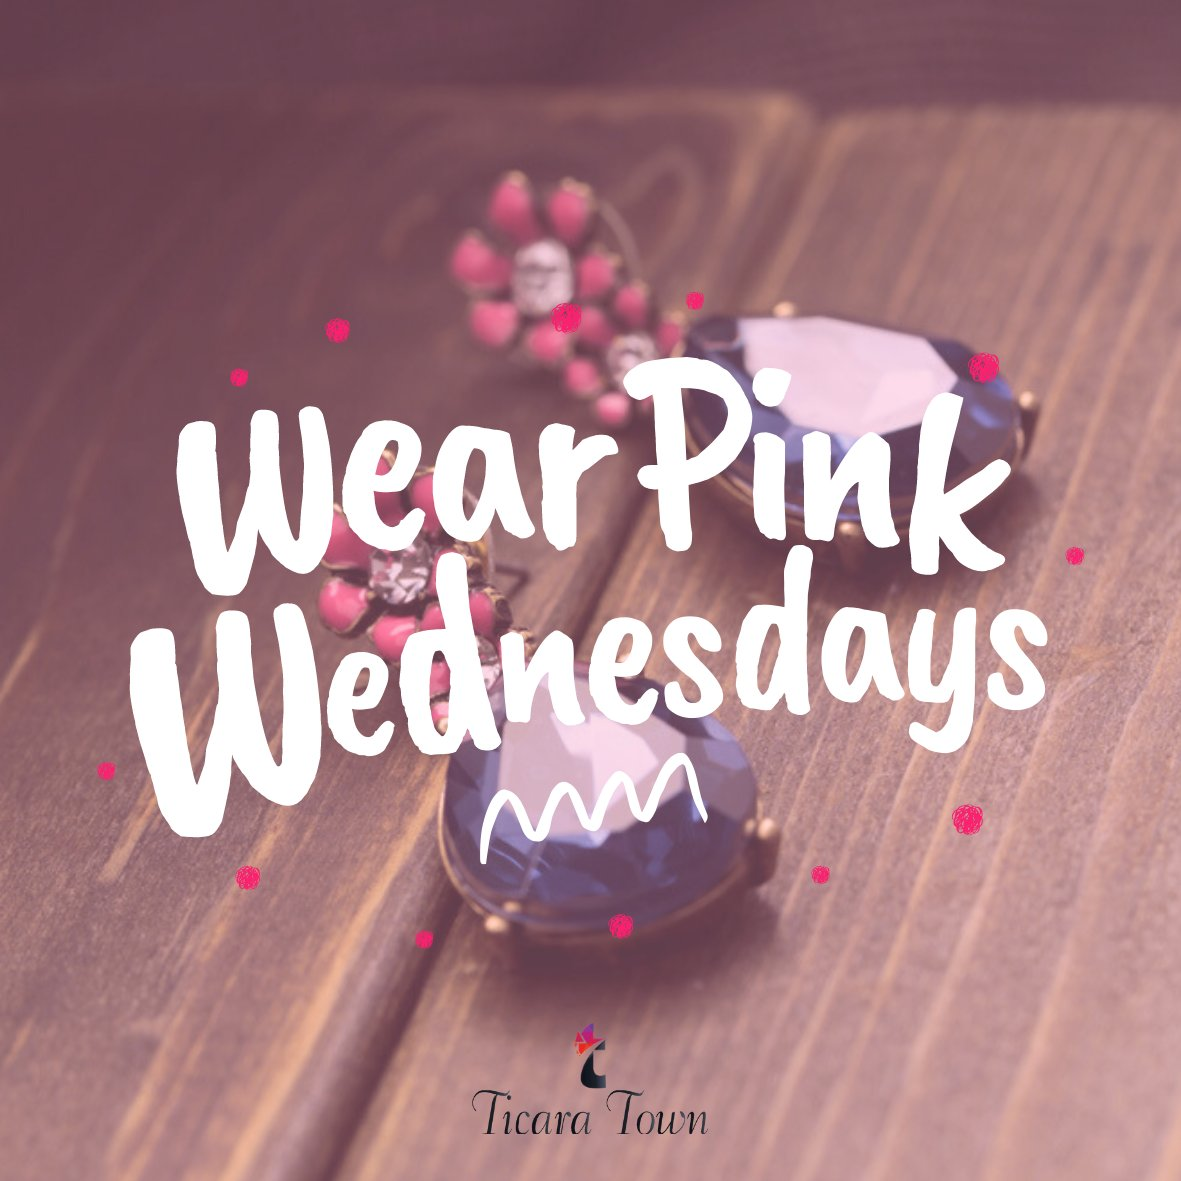 Happy pink Wednesday!! . #bohostylejewelry #prettyearrings #prettyjewelry #uniquejewelry #earringstyle #earringlover #earrings #beadedjewelry #beadedearrings #summerjewelry #summervibes #ticaratown